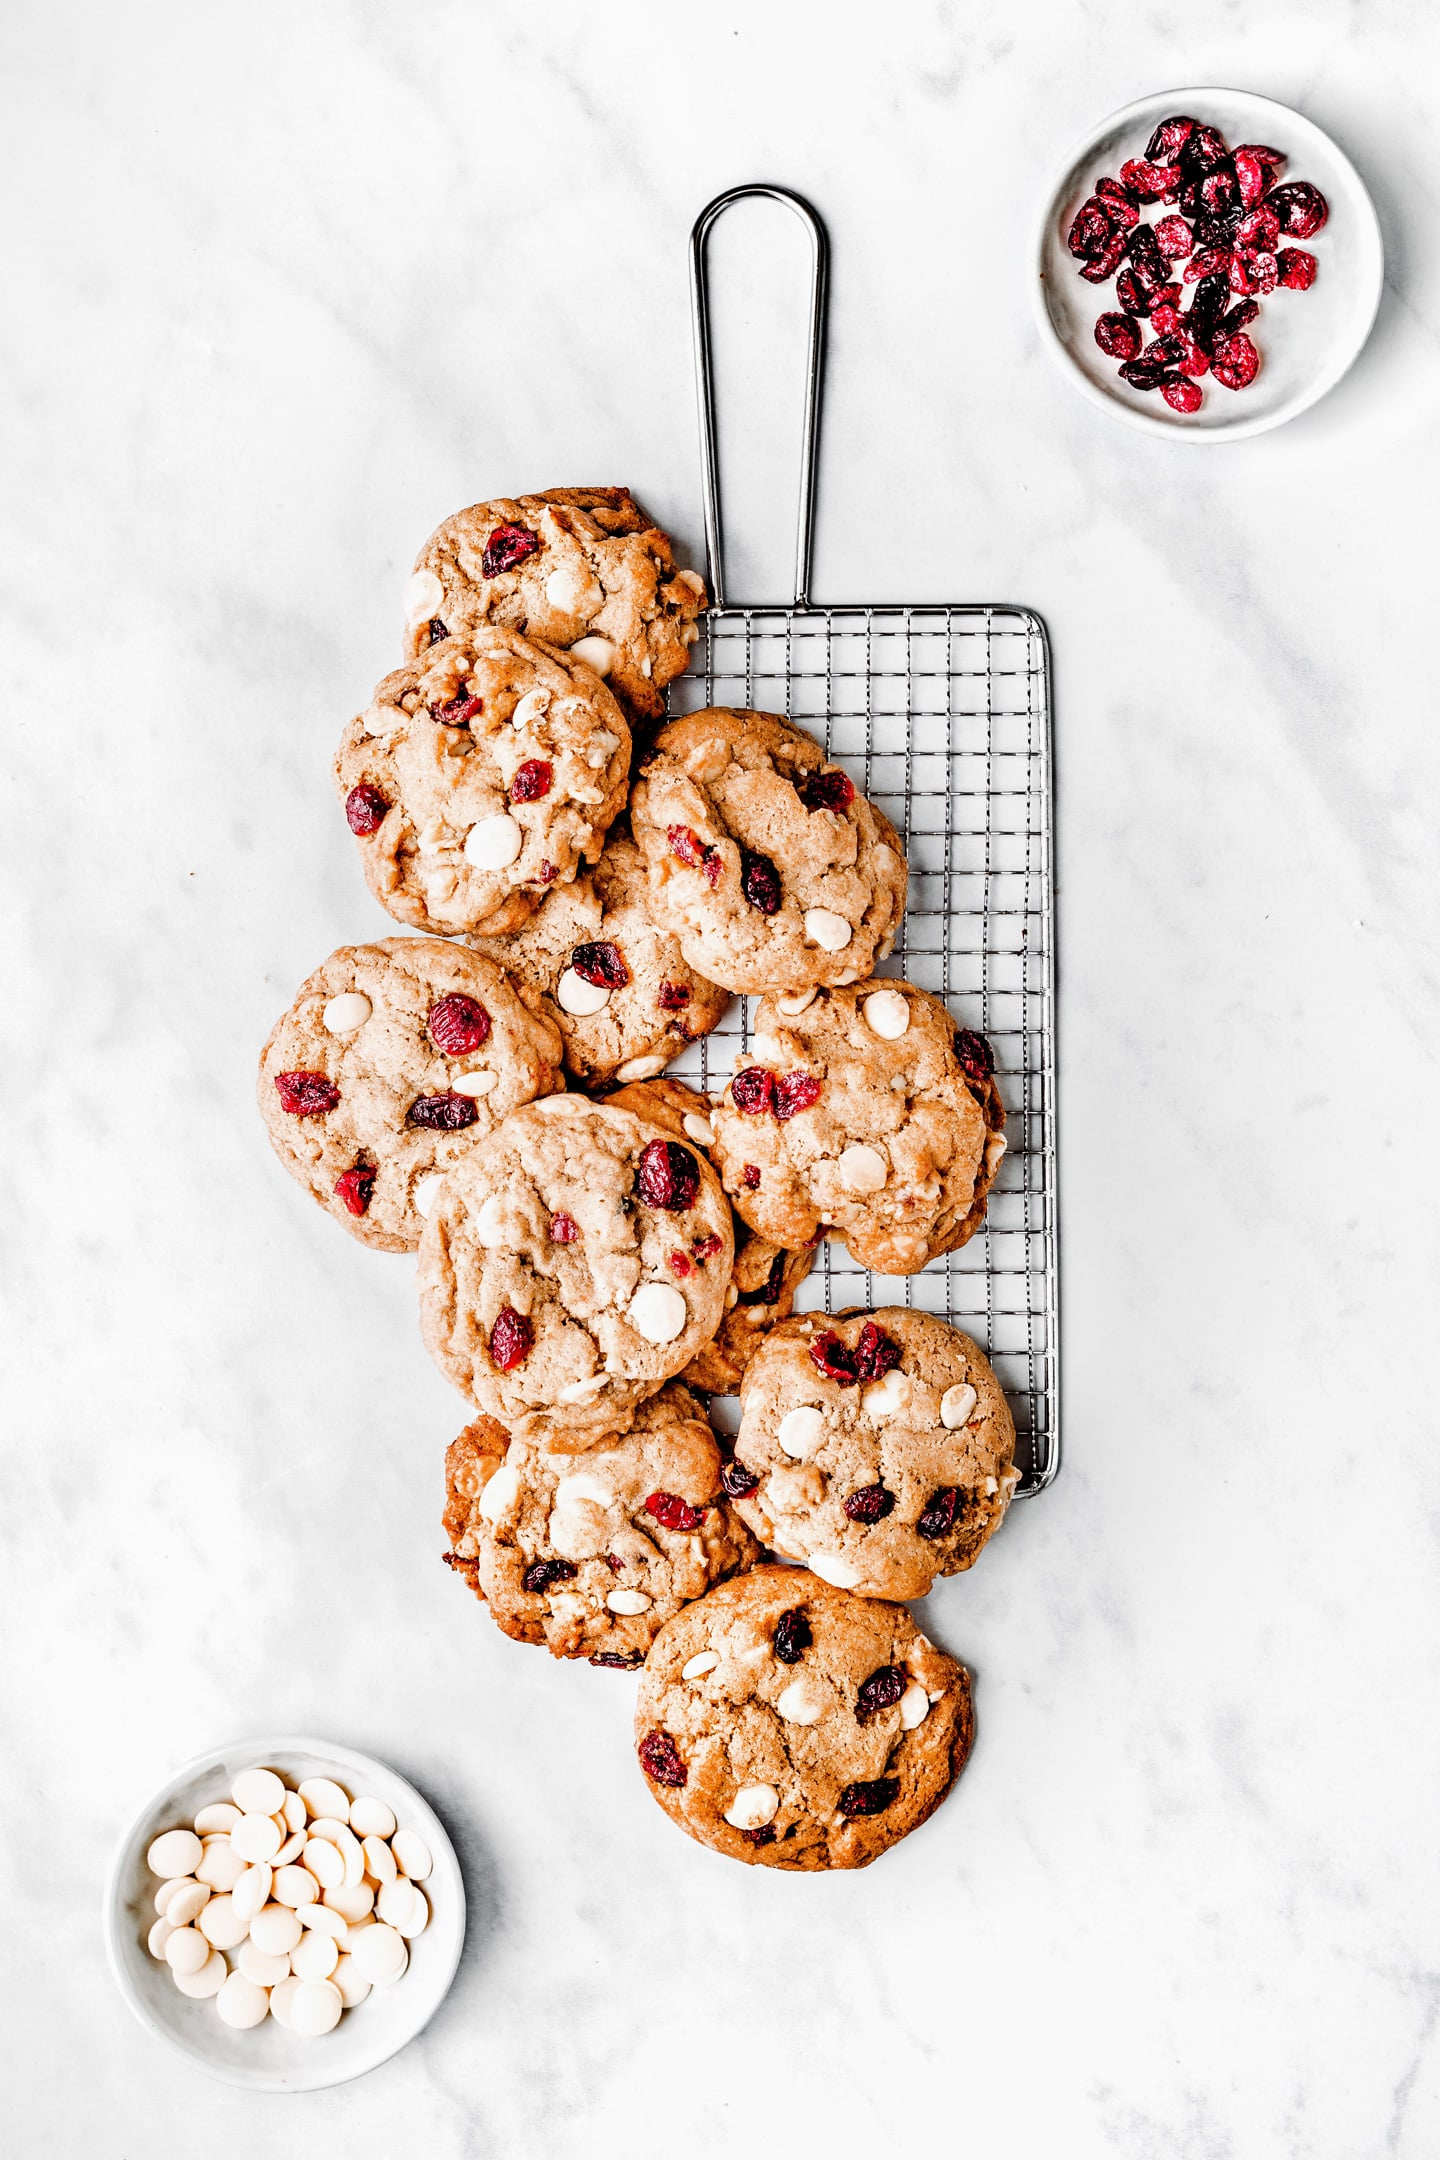 Cranberry withe chocolate cookies